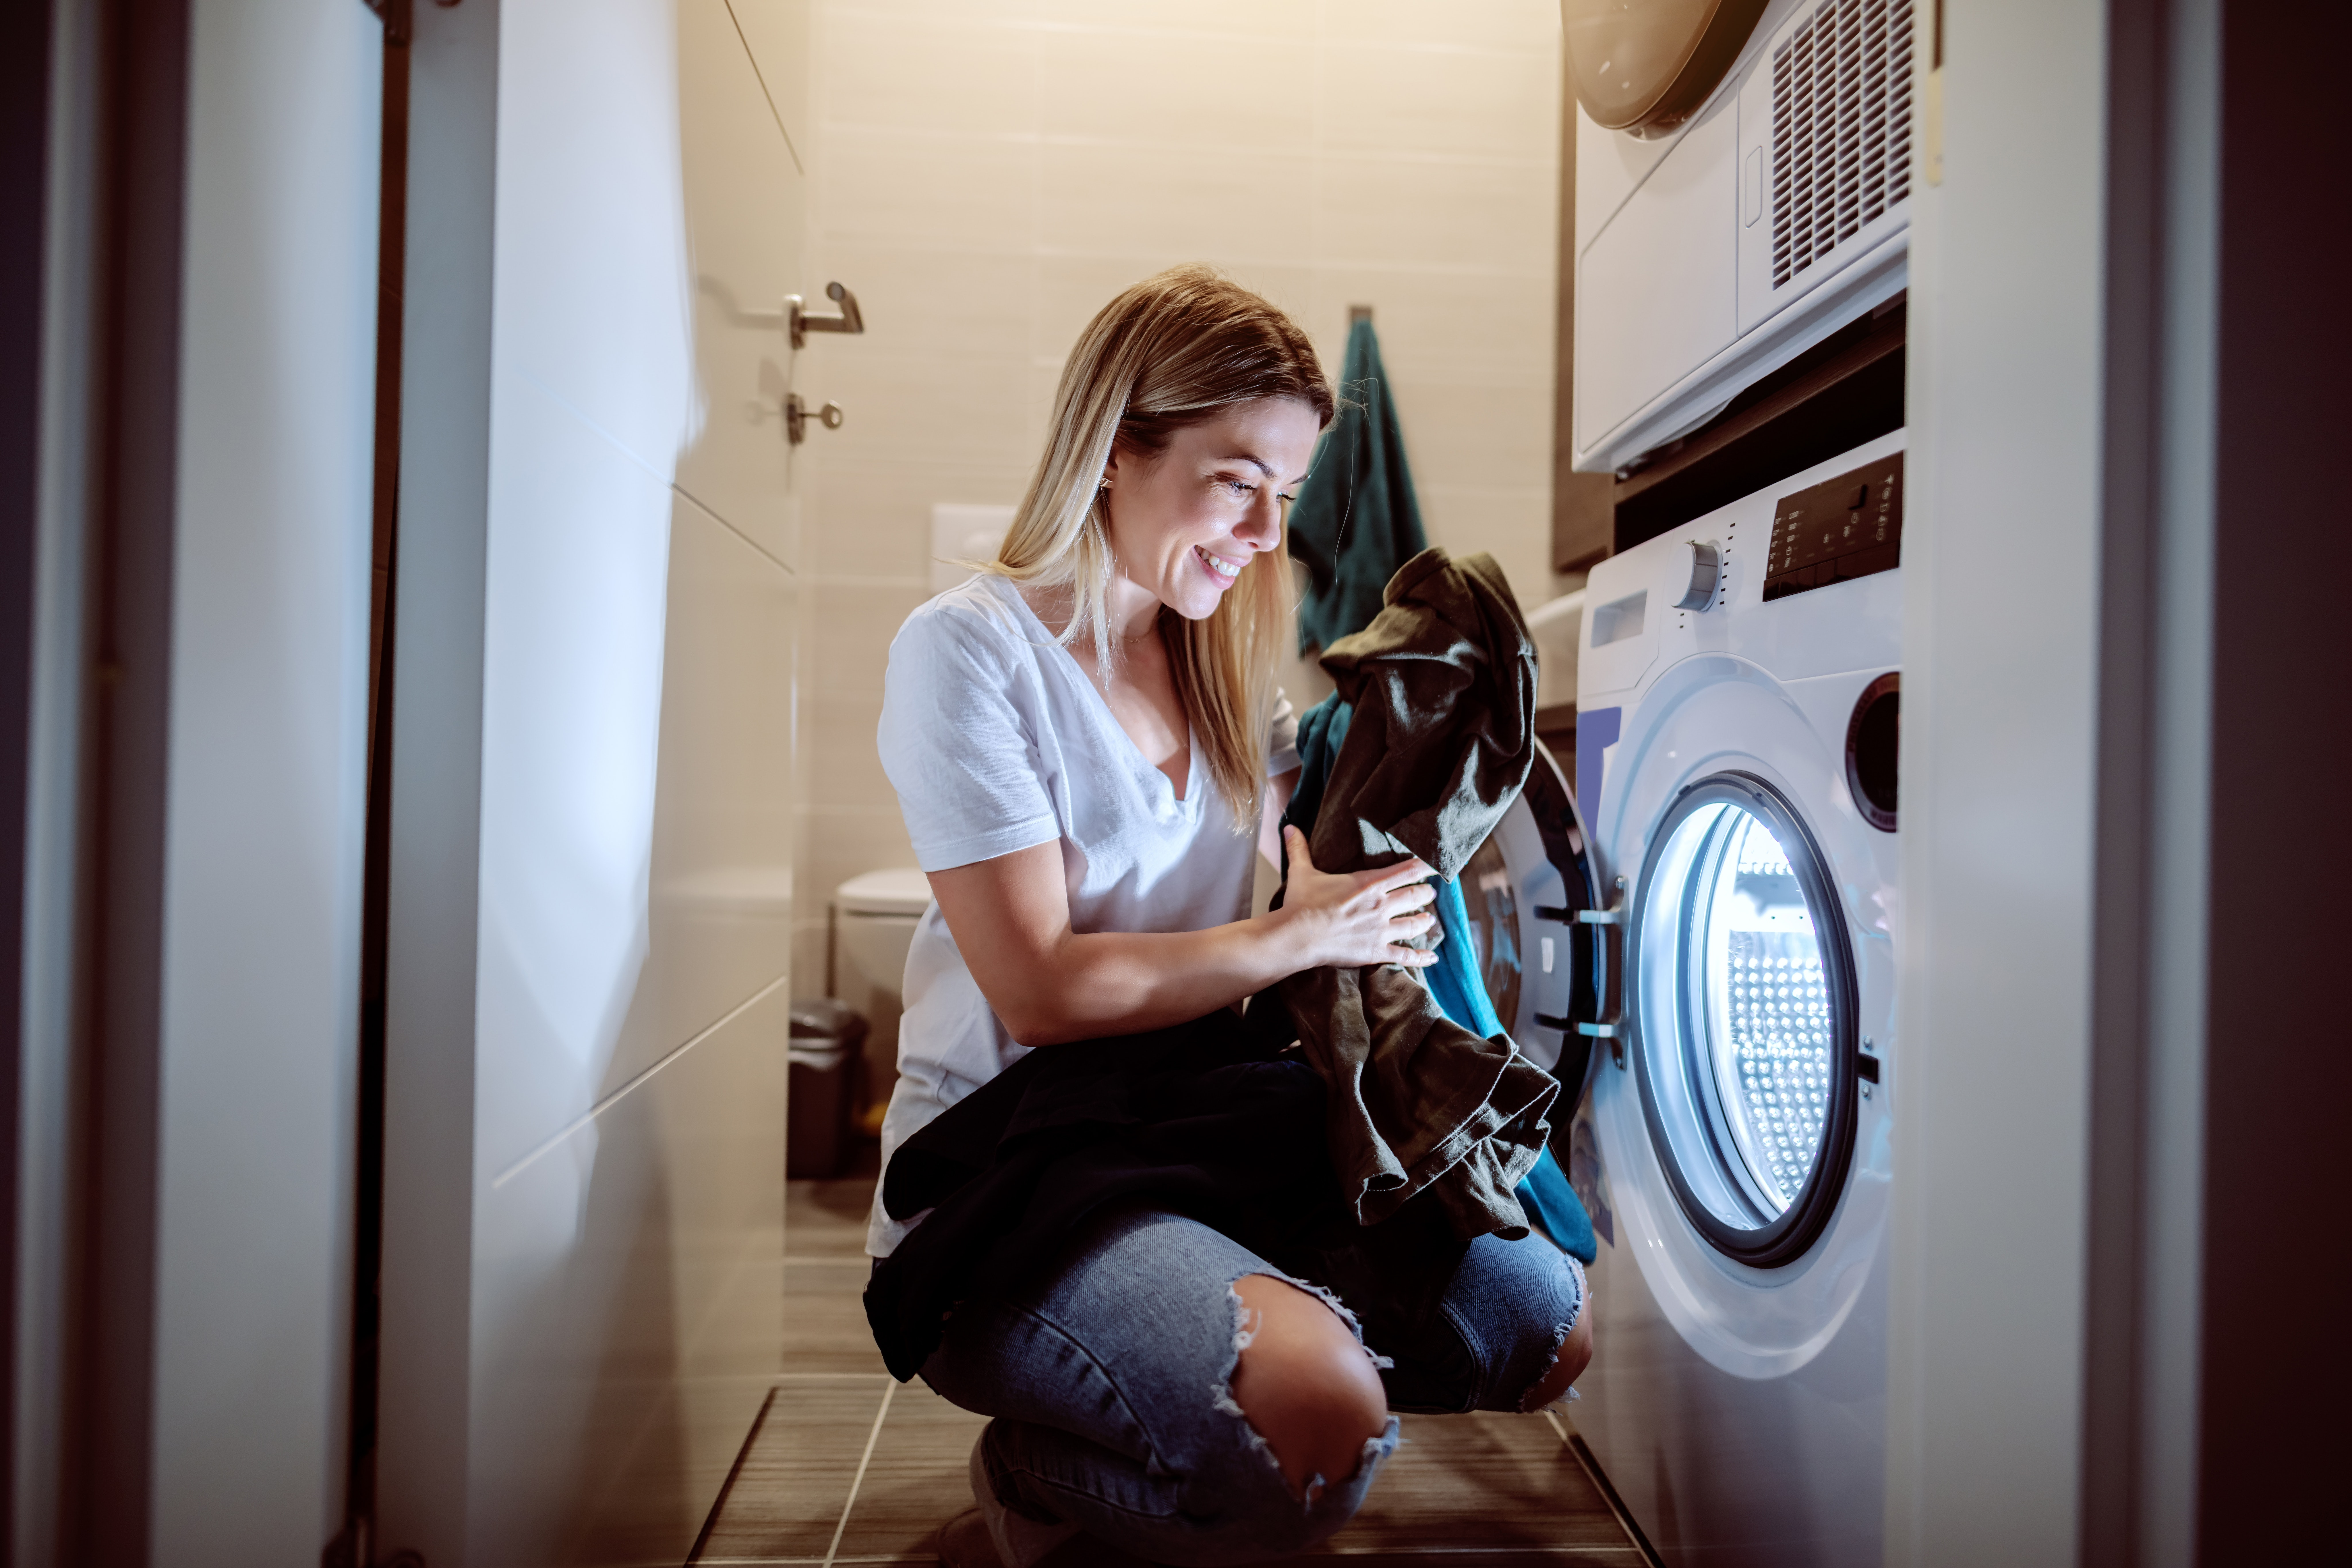 Woman using washing machine during Economy 7 hours